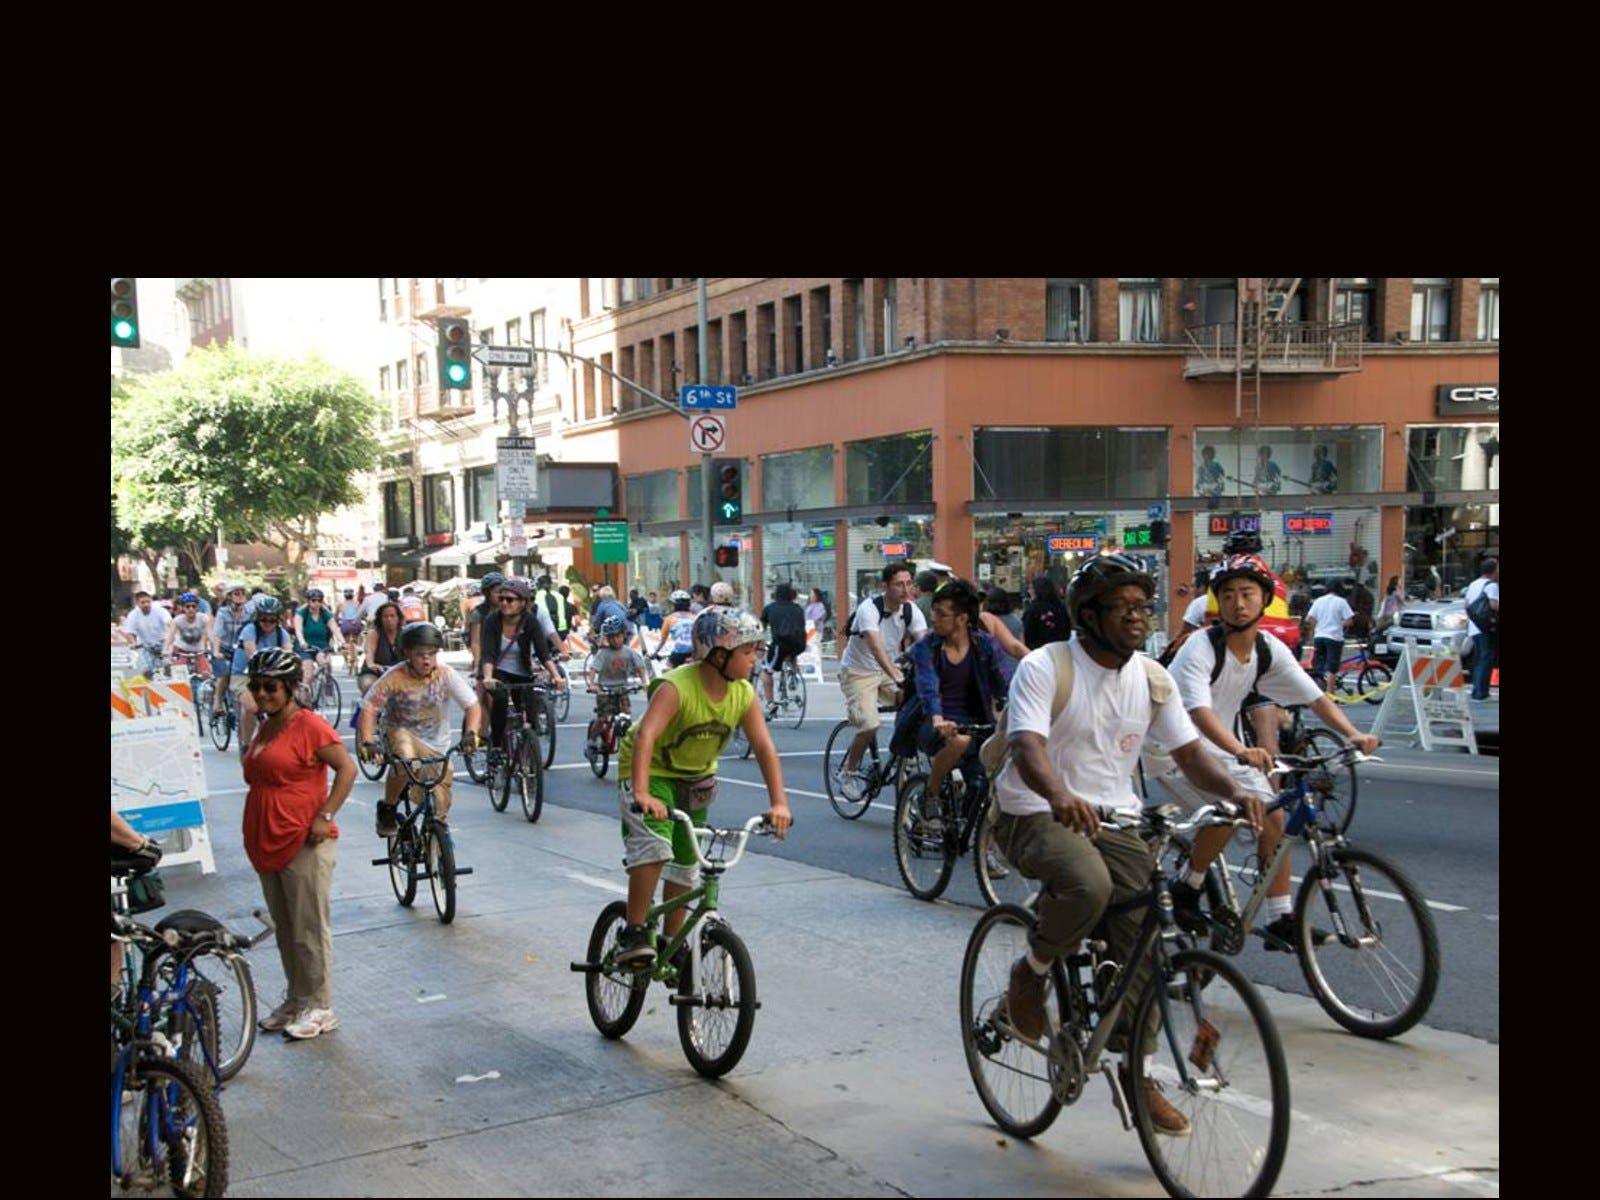 Main image for event titled CicLAvia